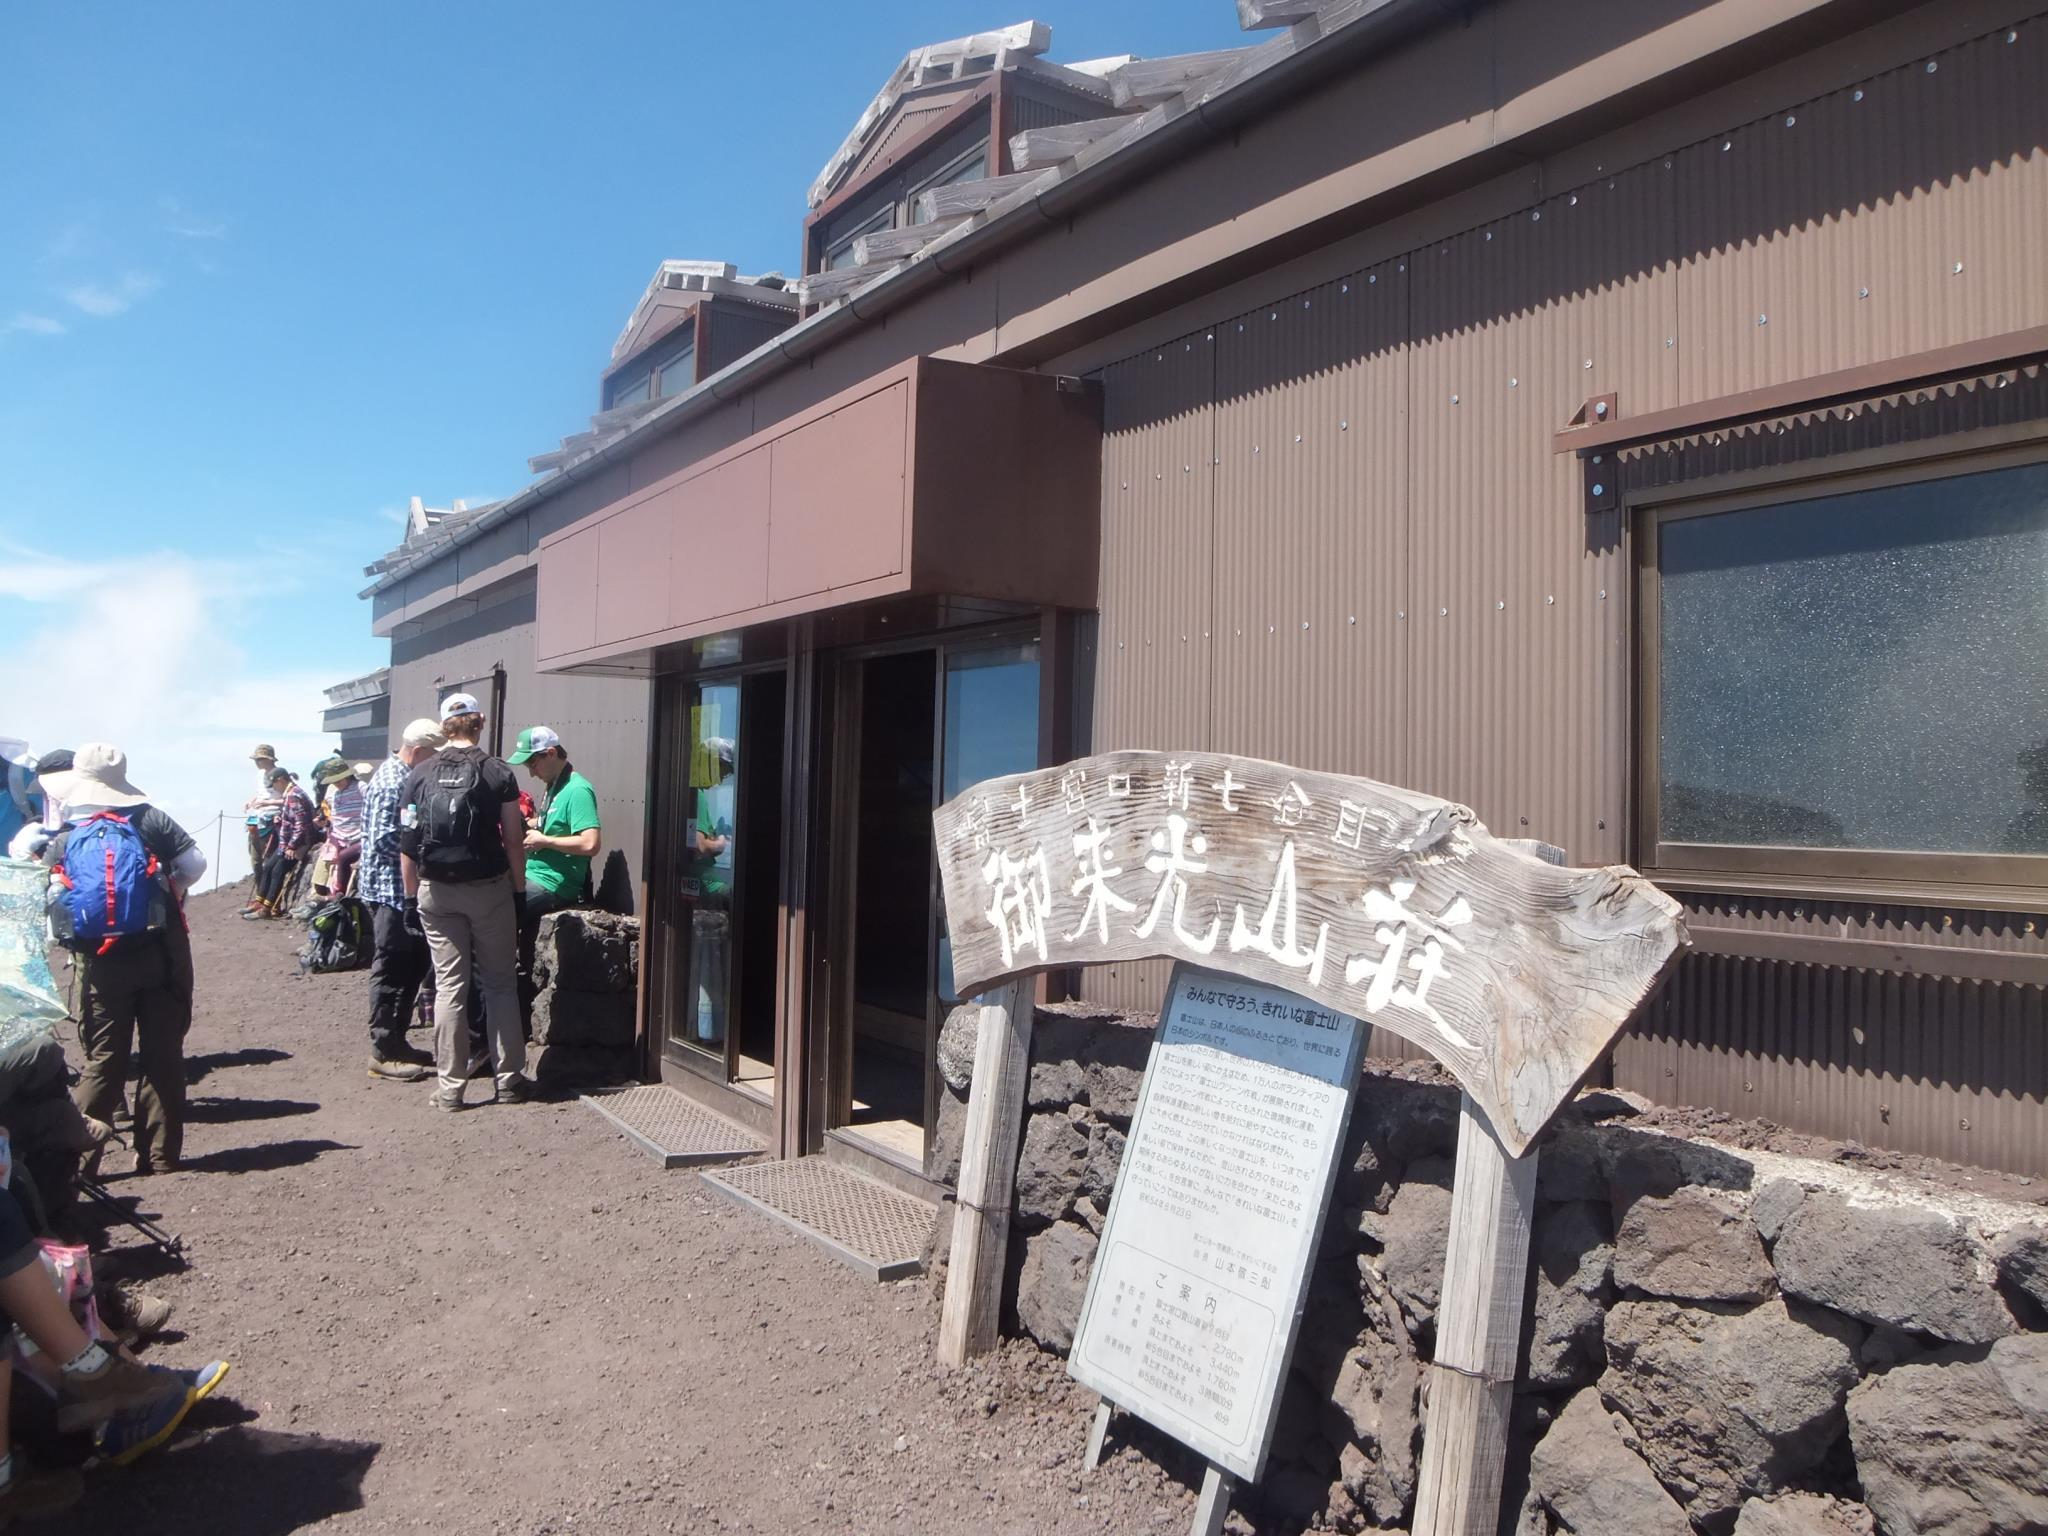 Goraikou Sanso - Lodge at 7th Point of Mt. Fuji, Fuji